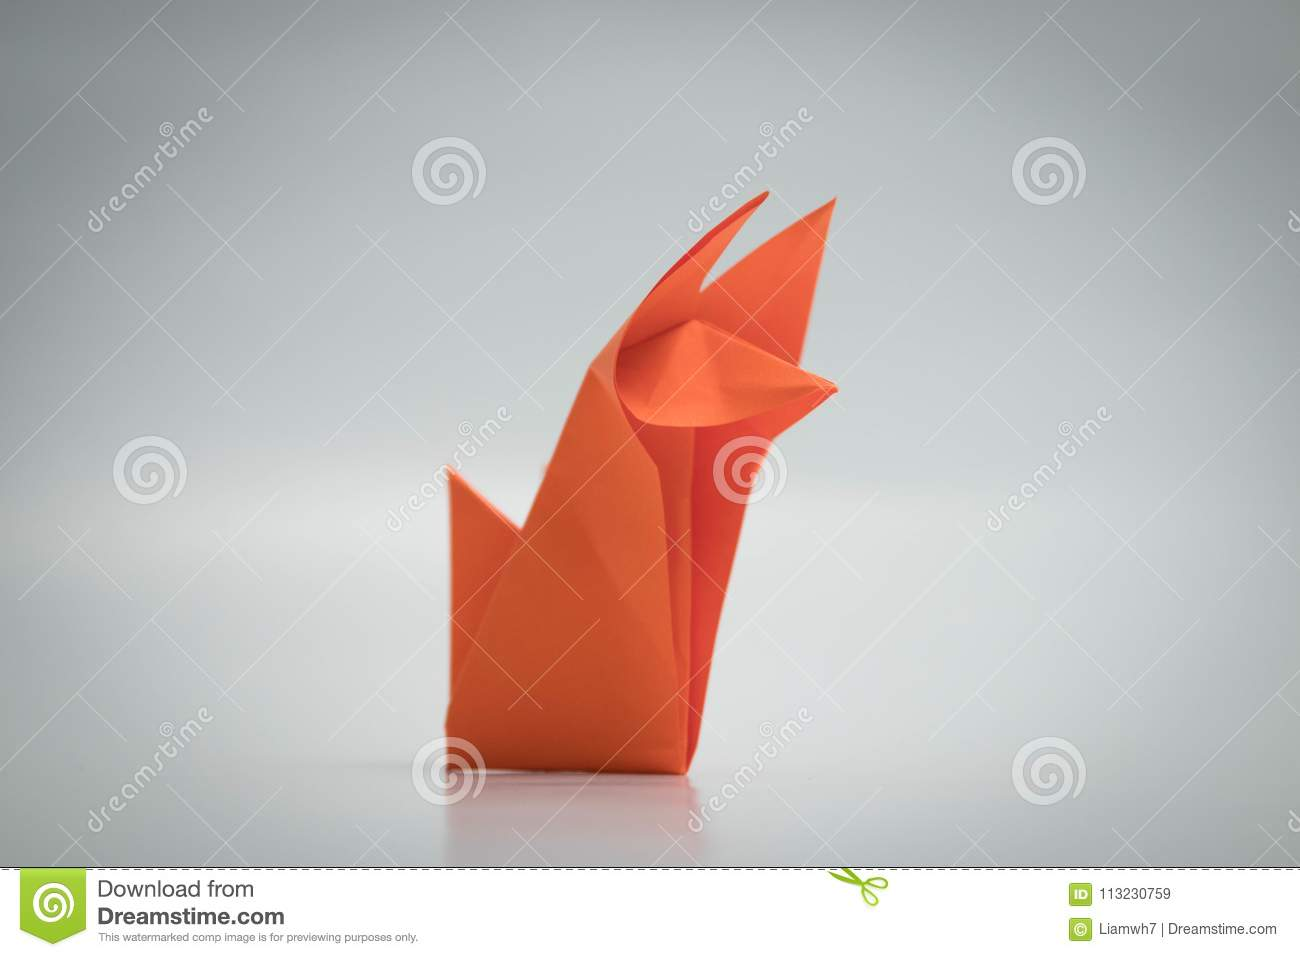 Origami Orange Diagram Wiring Services Advanced Fox Instructions Animal Paper Stock Image Of Hobby Rh Dreamstime Com Complex Diagrams Crane